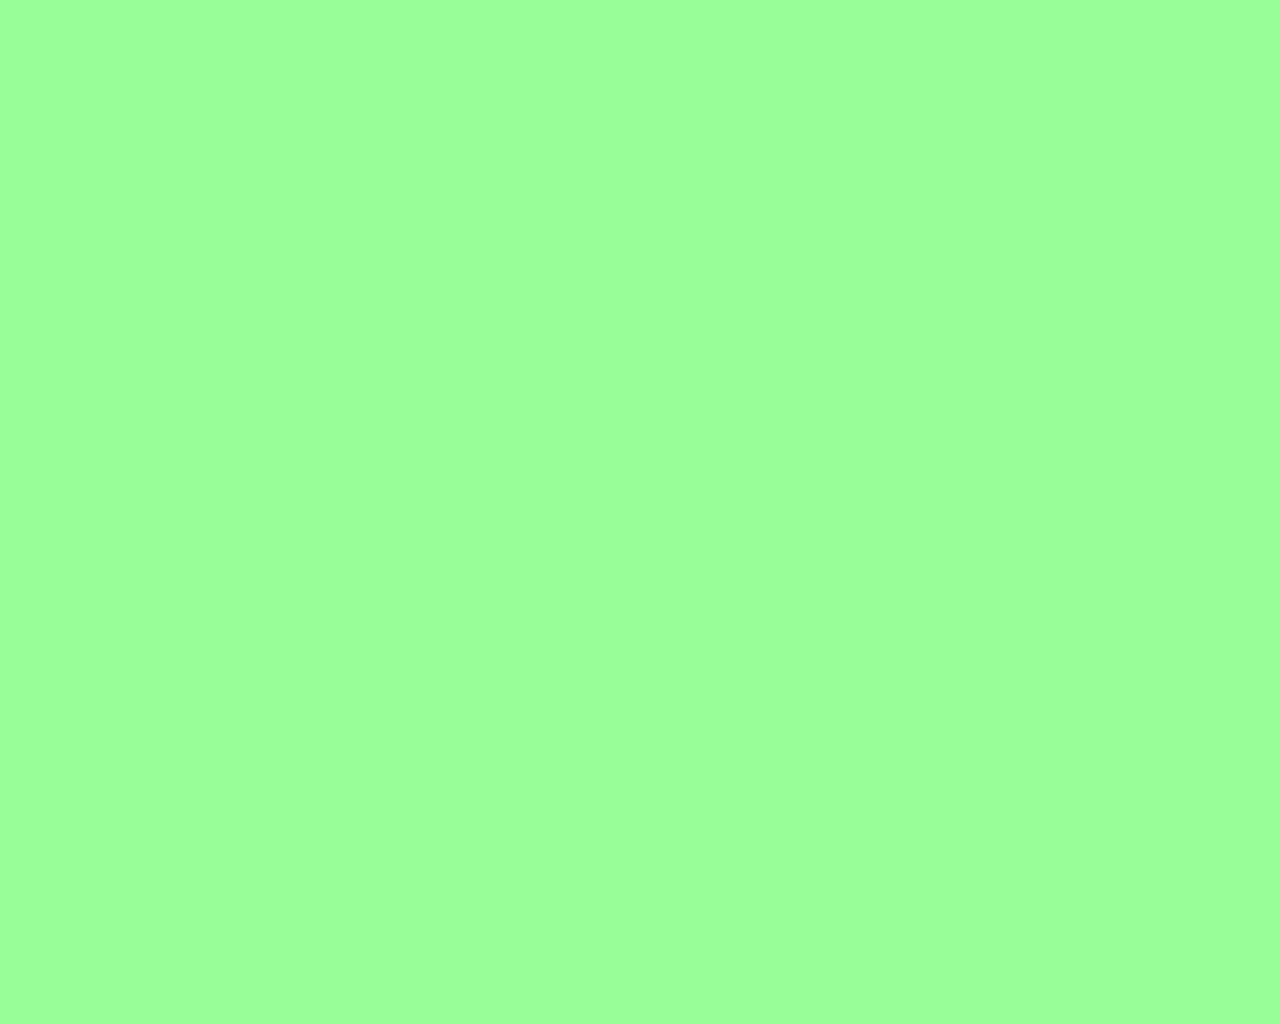 1280x1024 resolution Mint Green solid color background view and 1280x1024